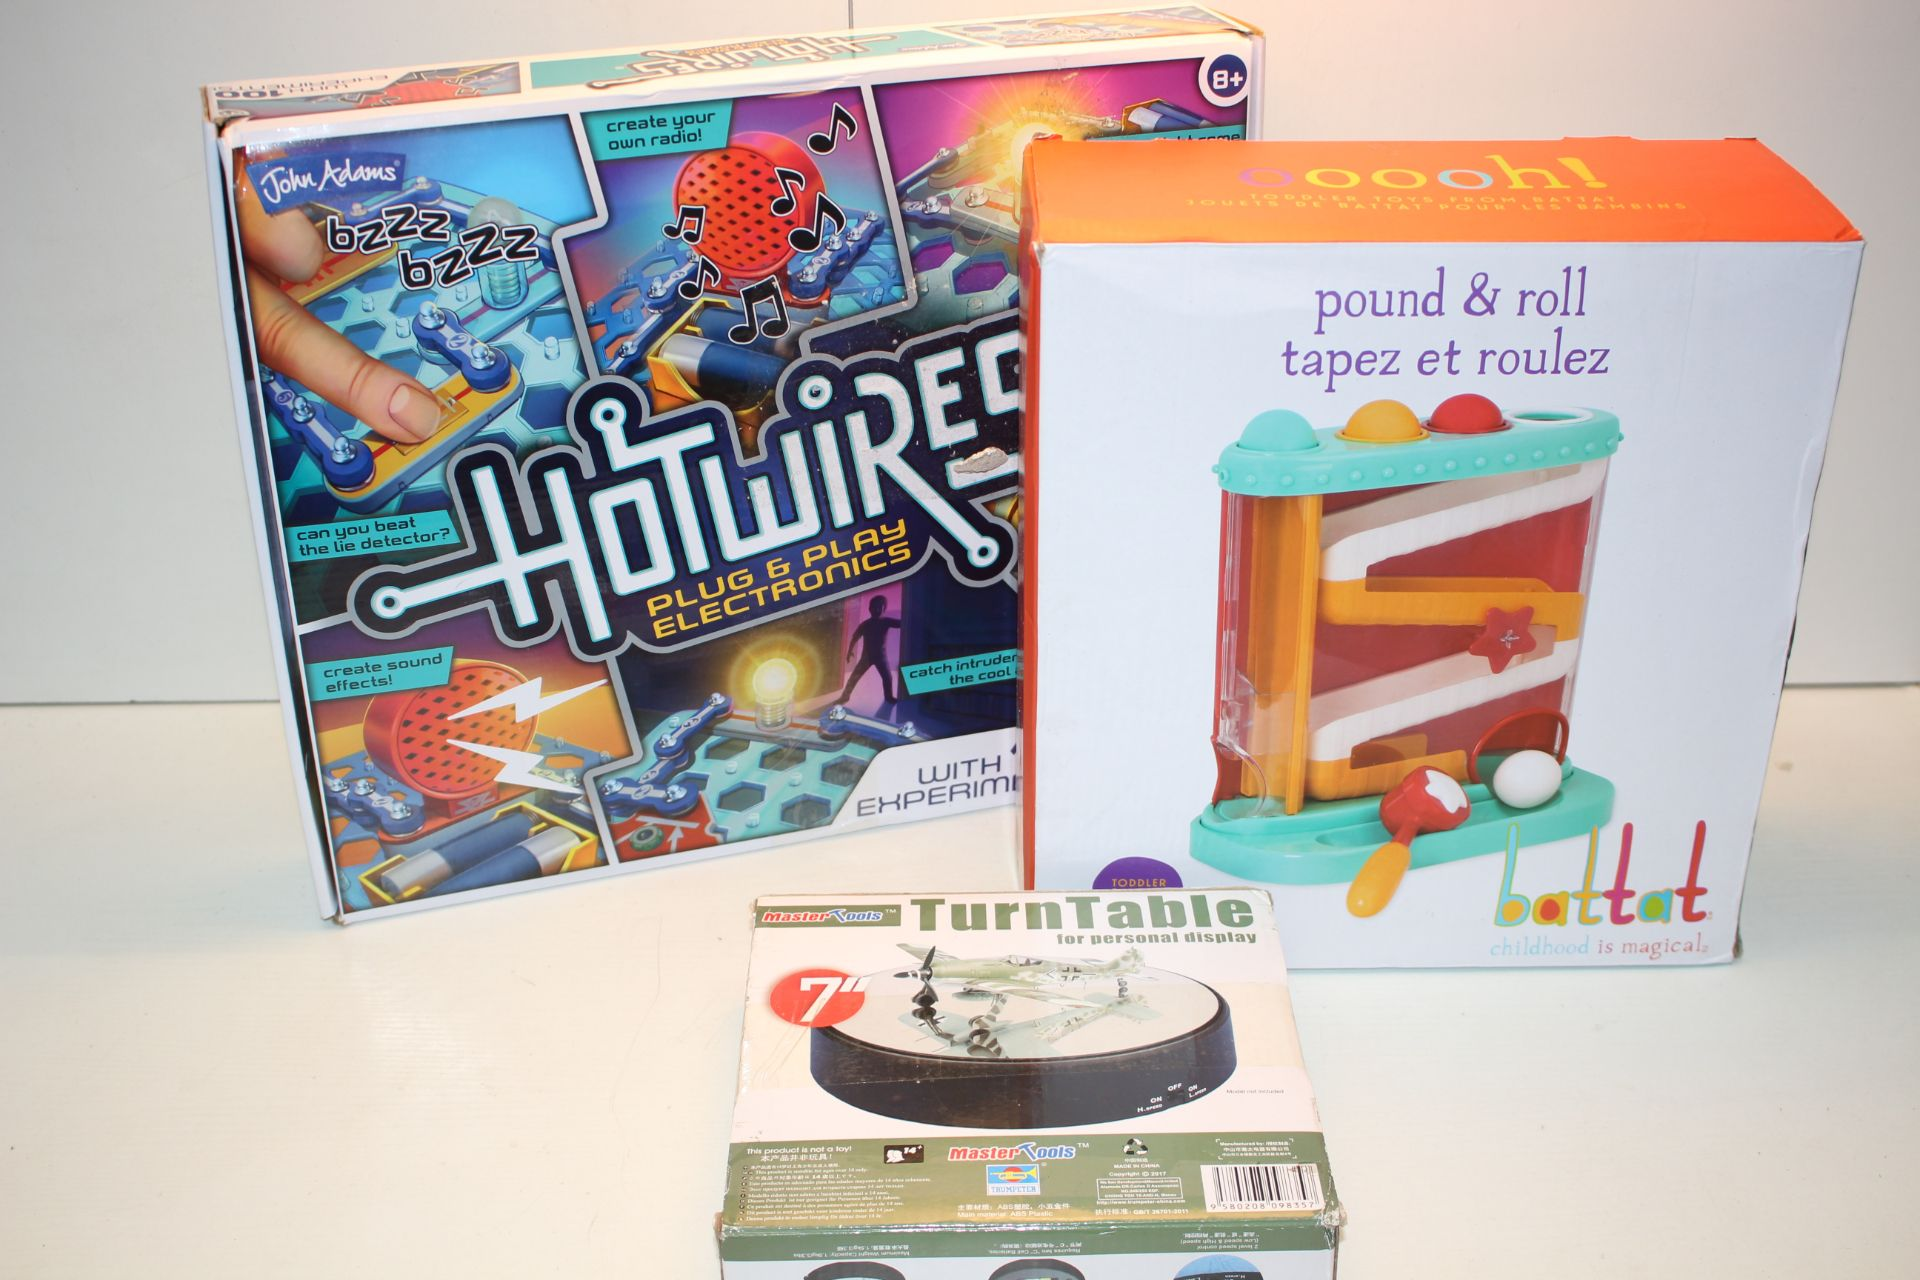 3X BOXED ASSORTED ITEMS TO INCLUDE POUND & ROLL, MASTER TOOLS TURNTABLE & HOT WIRES Condition